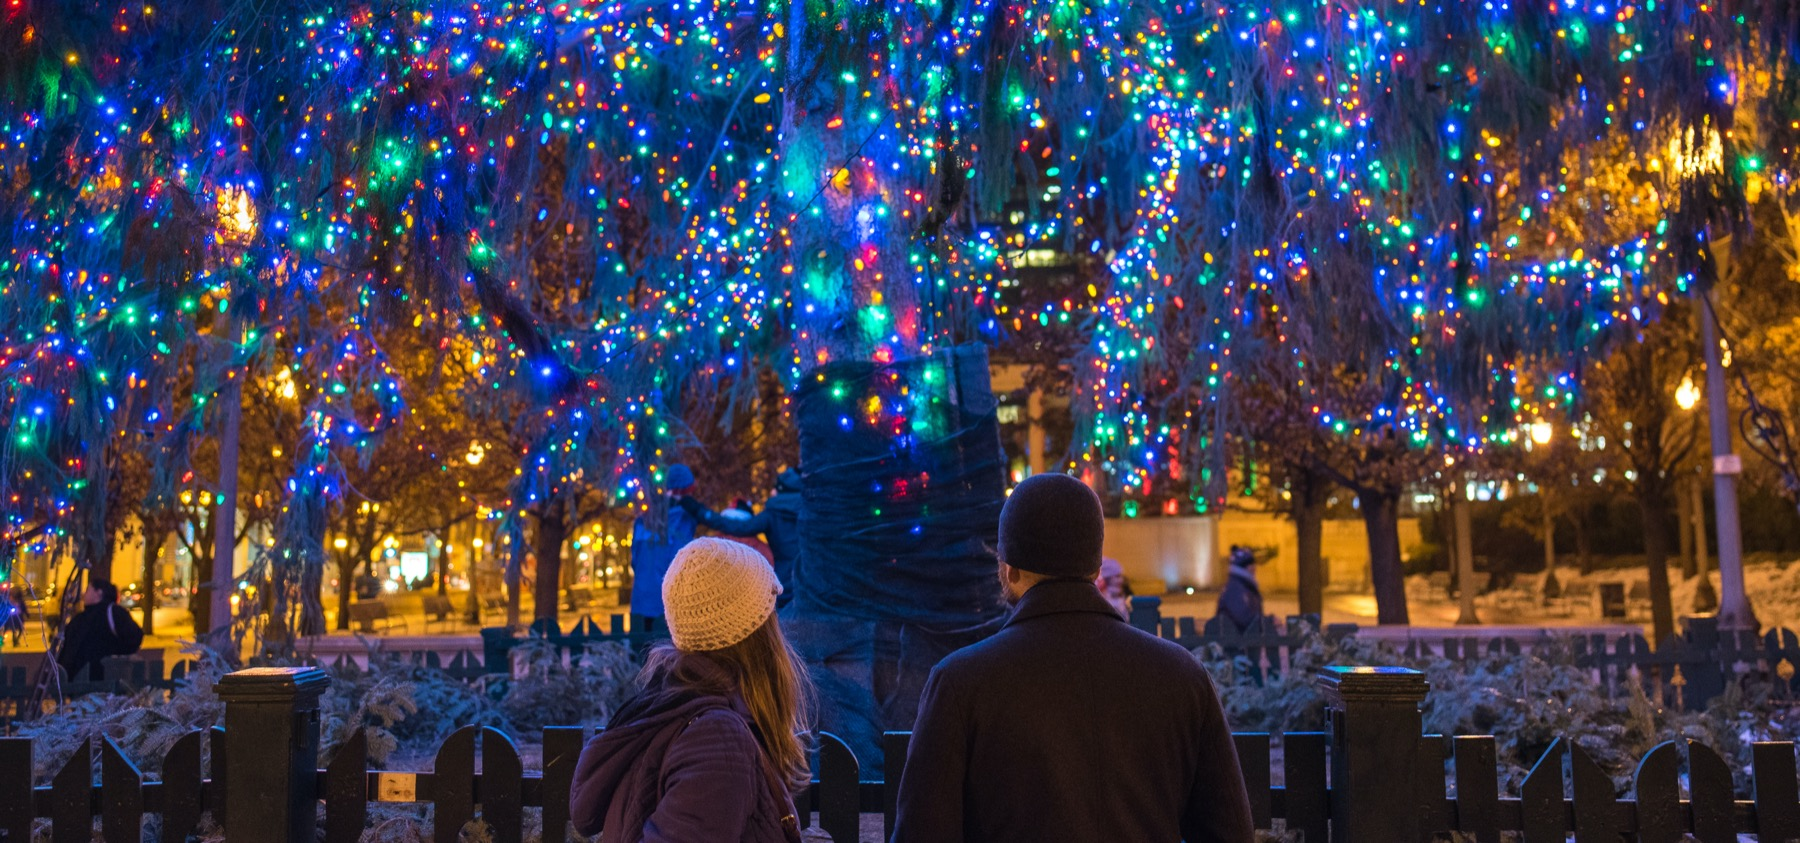 Things To Do In Chicago Christmas 2021 Christmas In Chicago Best Things To Do Holiday Markets Shows Events